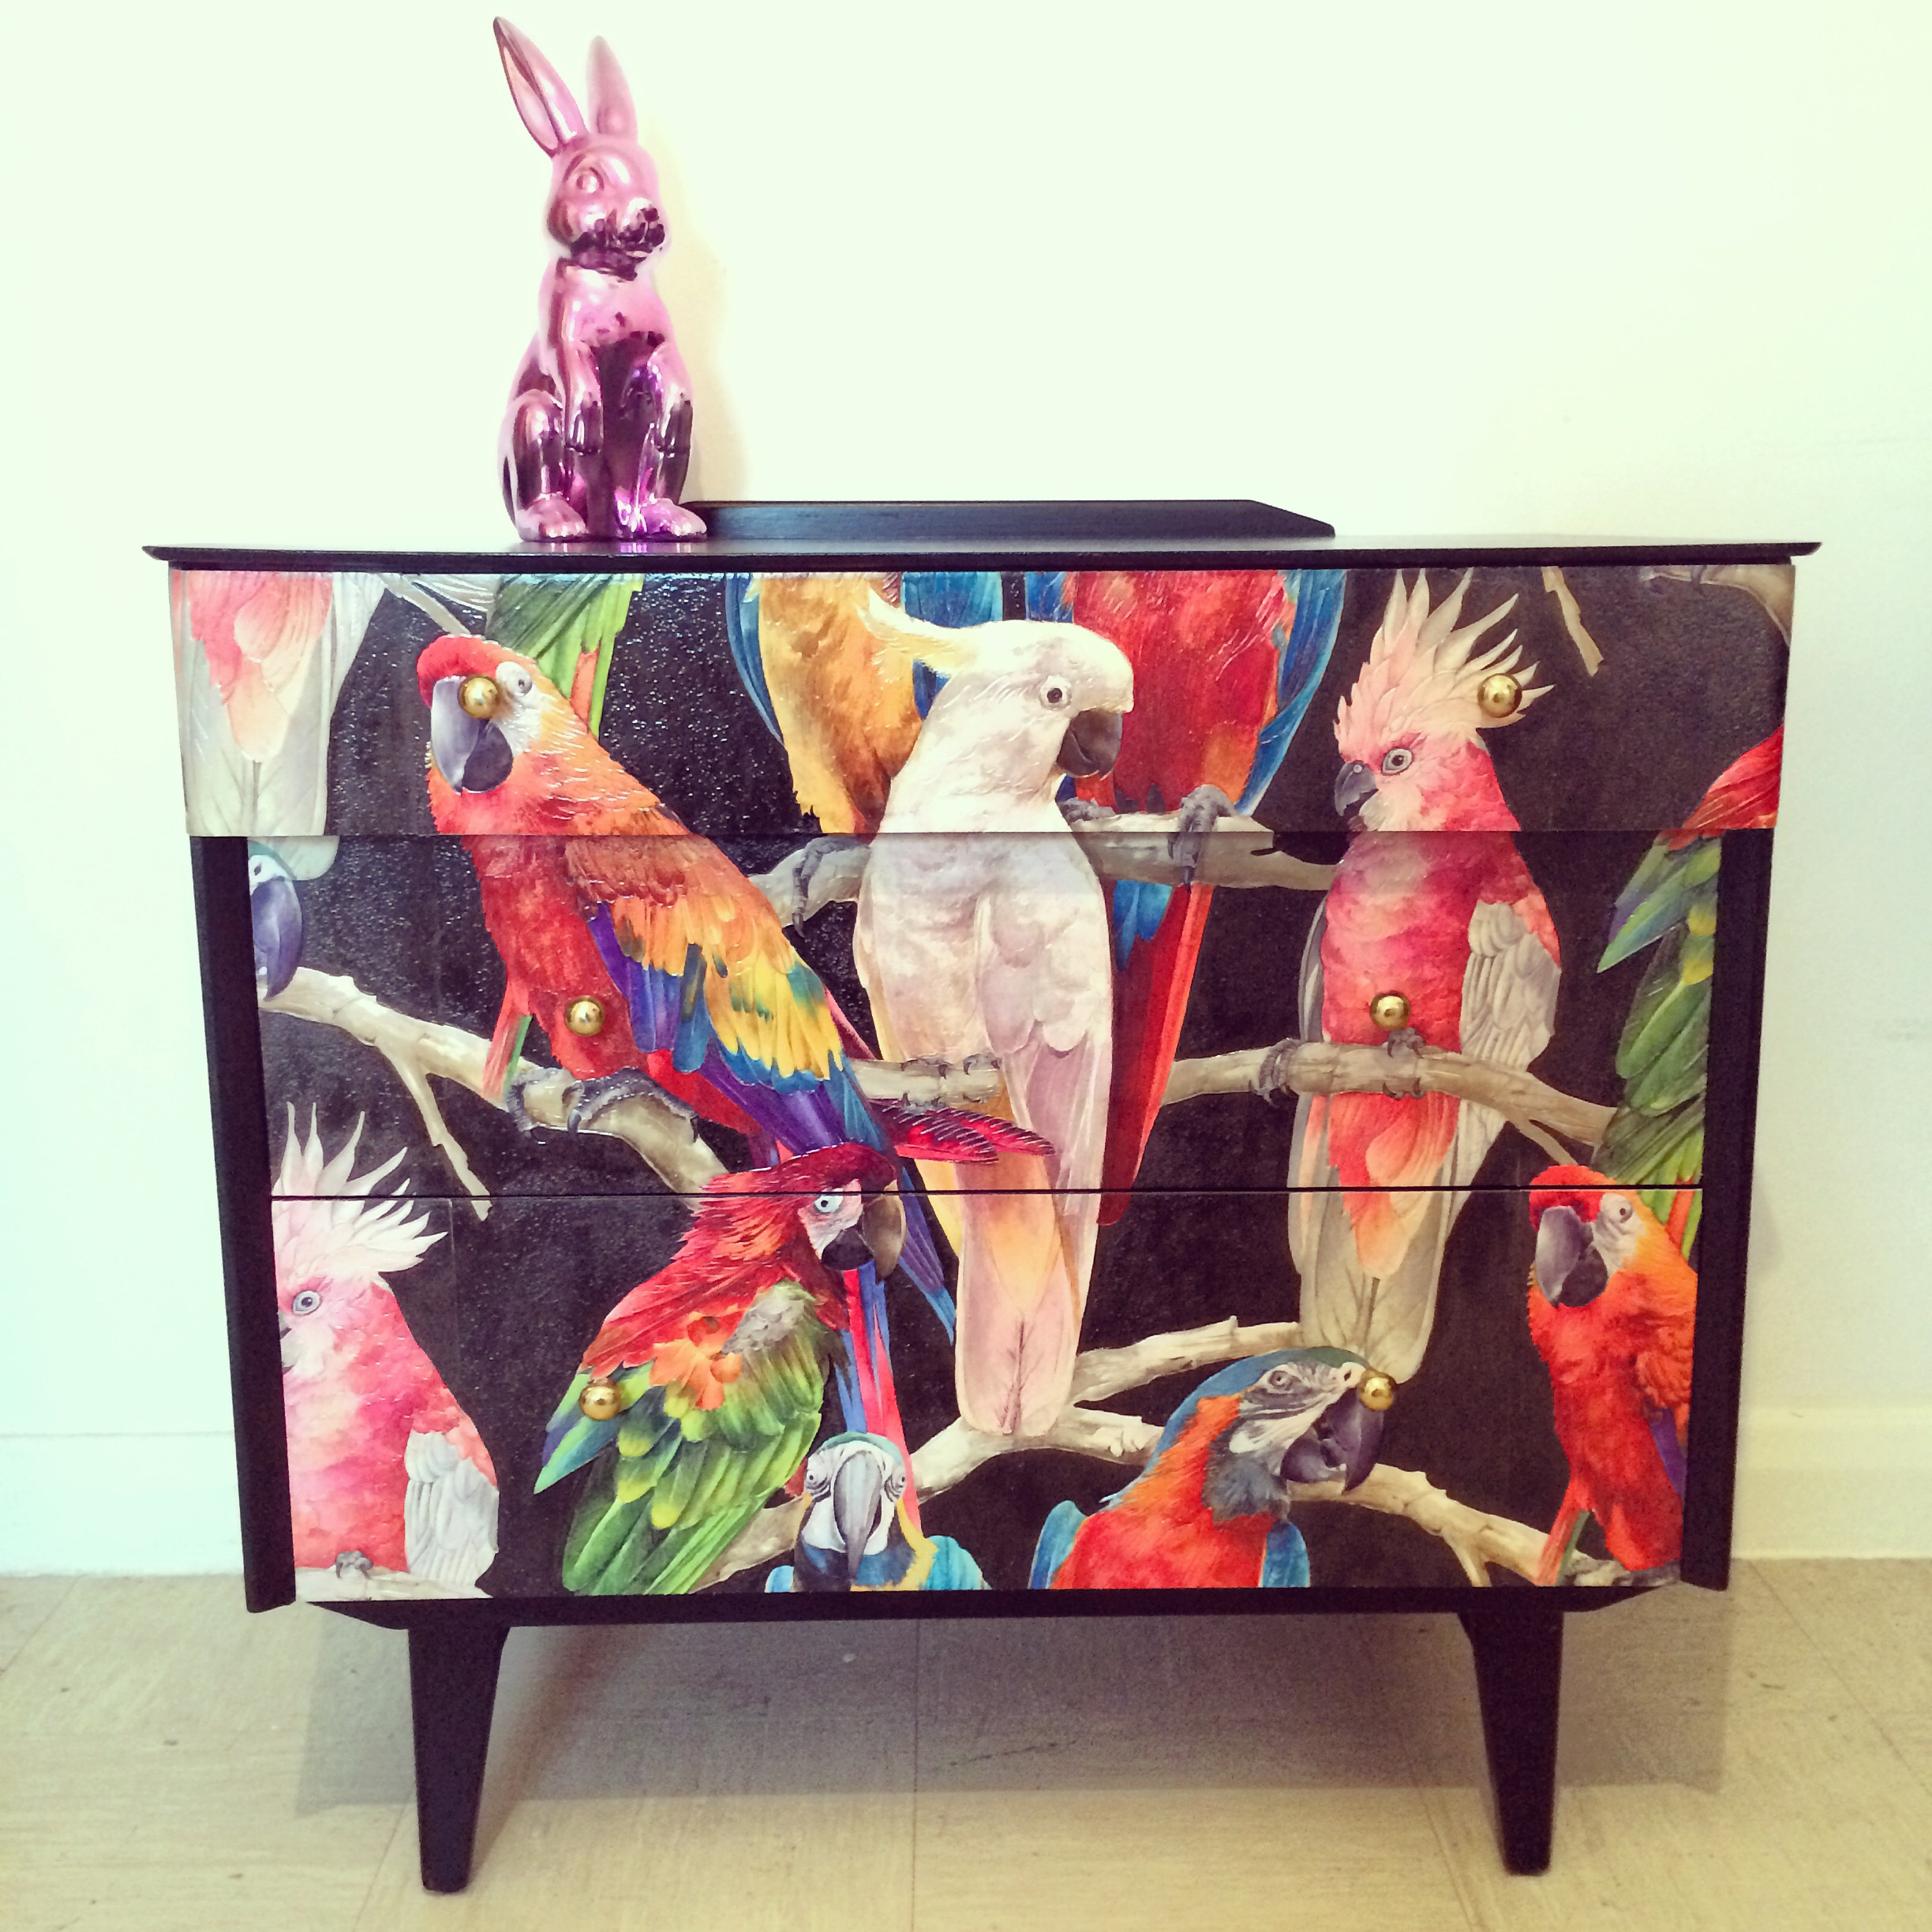 Upcycled parrots.